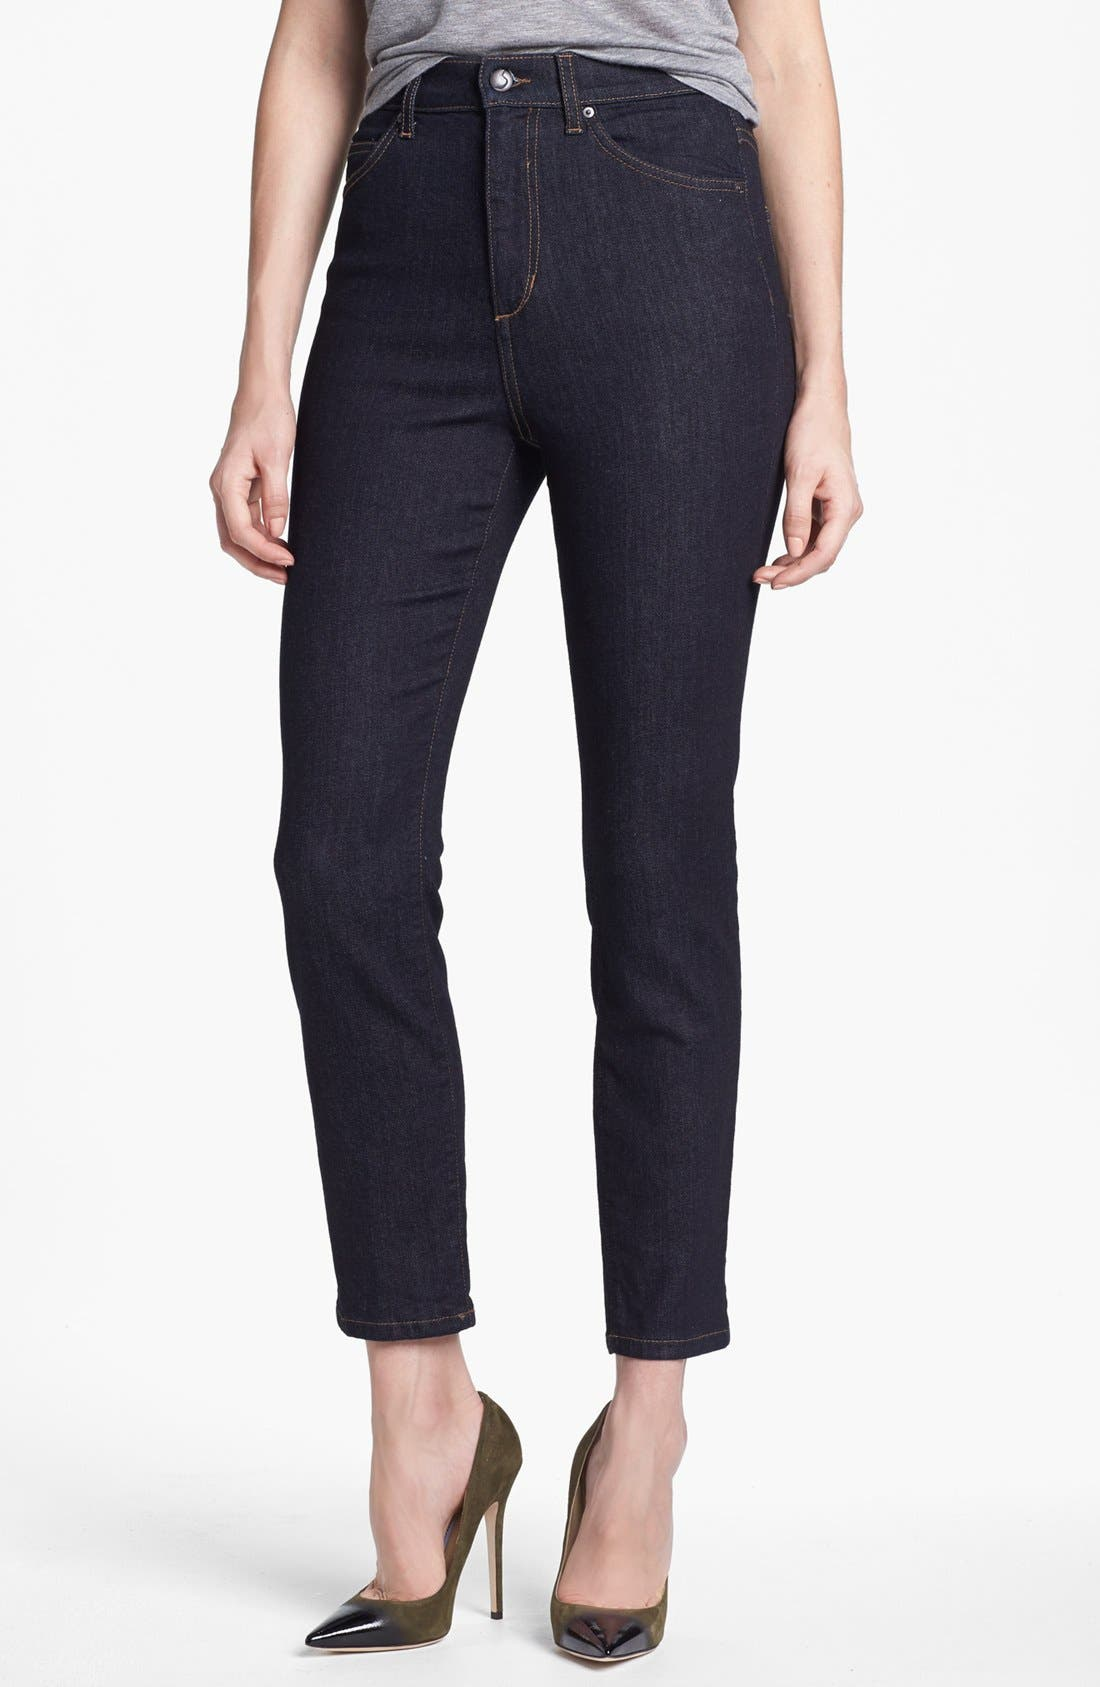 Alternate Image 1 Selected - Joe's High Rise Straight Leg Ankle Jeans (Everleigh)